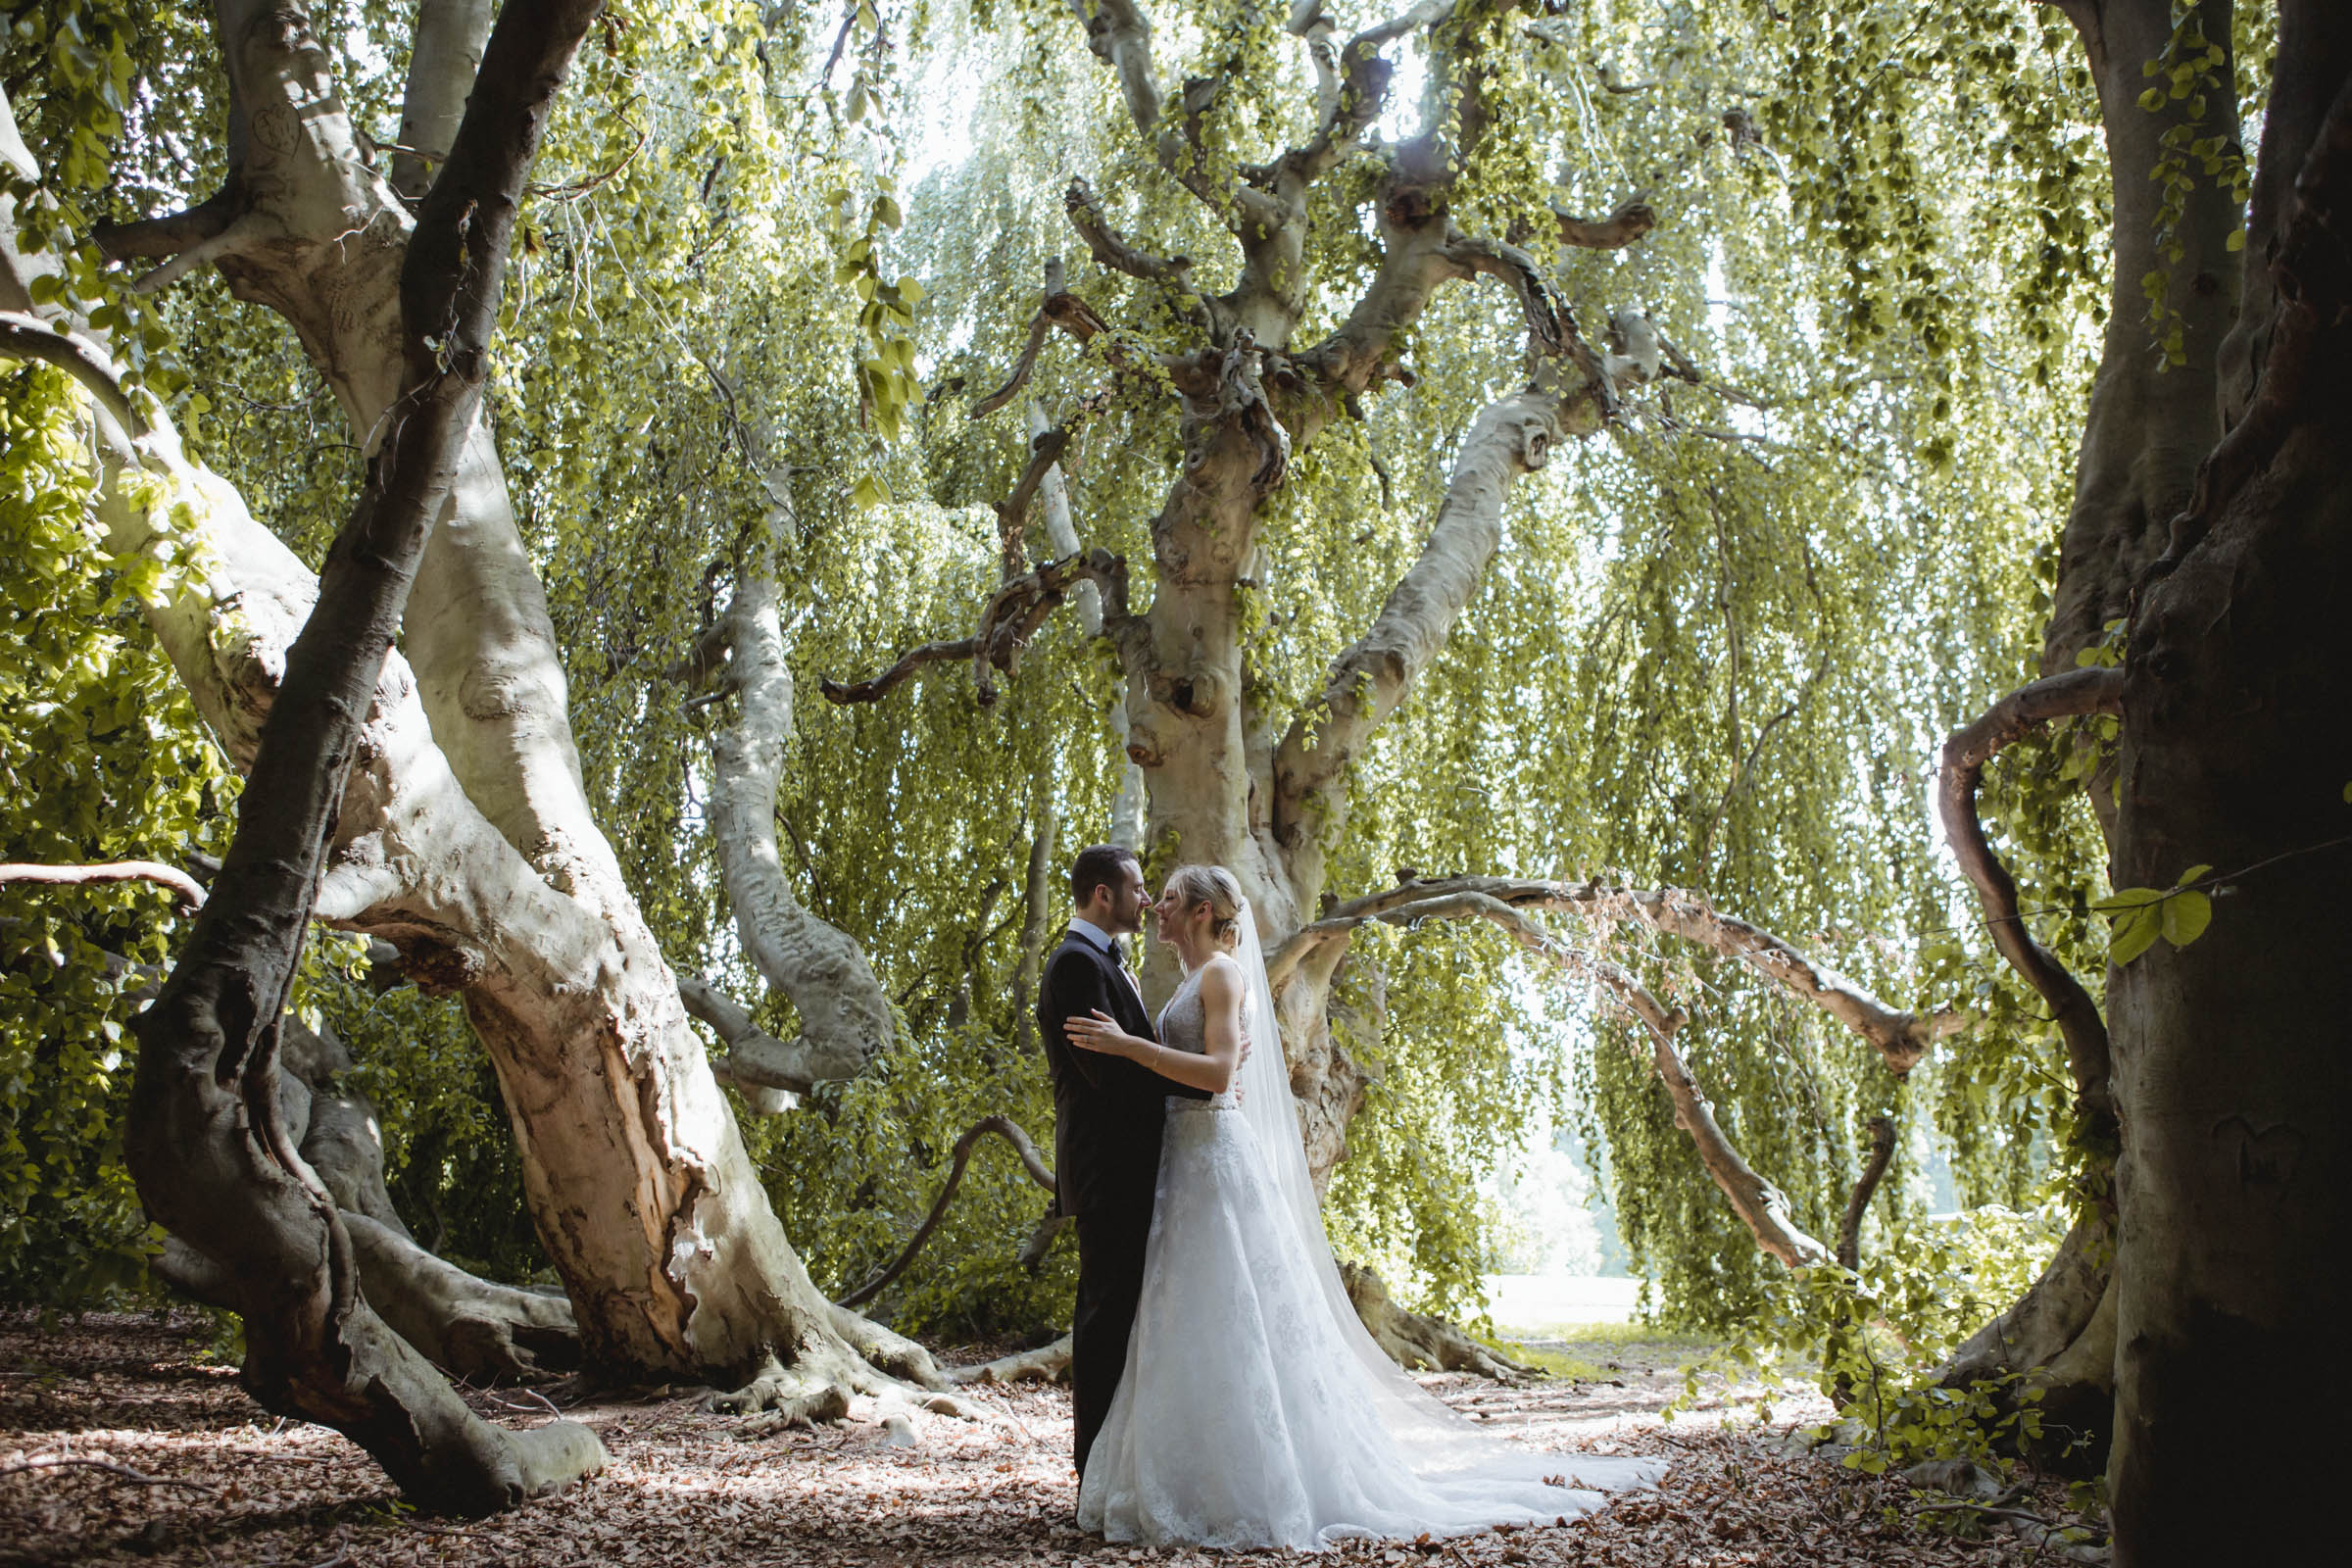 Amy Sims Photography | Bride and Groom have an intimate moment beneath a canopy of trees | Lyndhurst Mansion Wedding | Hudson Valley wedding photographer | Westchester wedding photographer